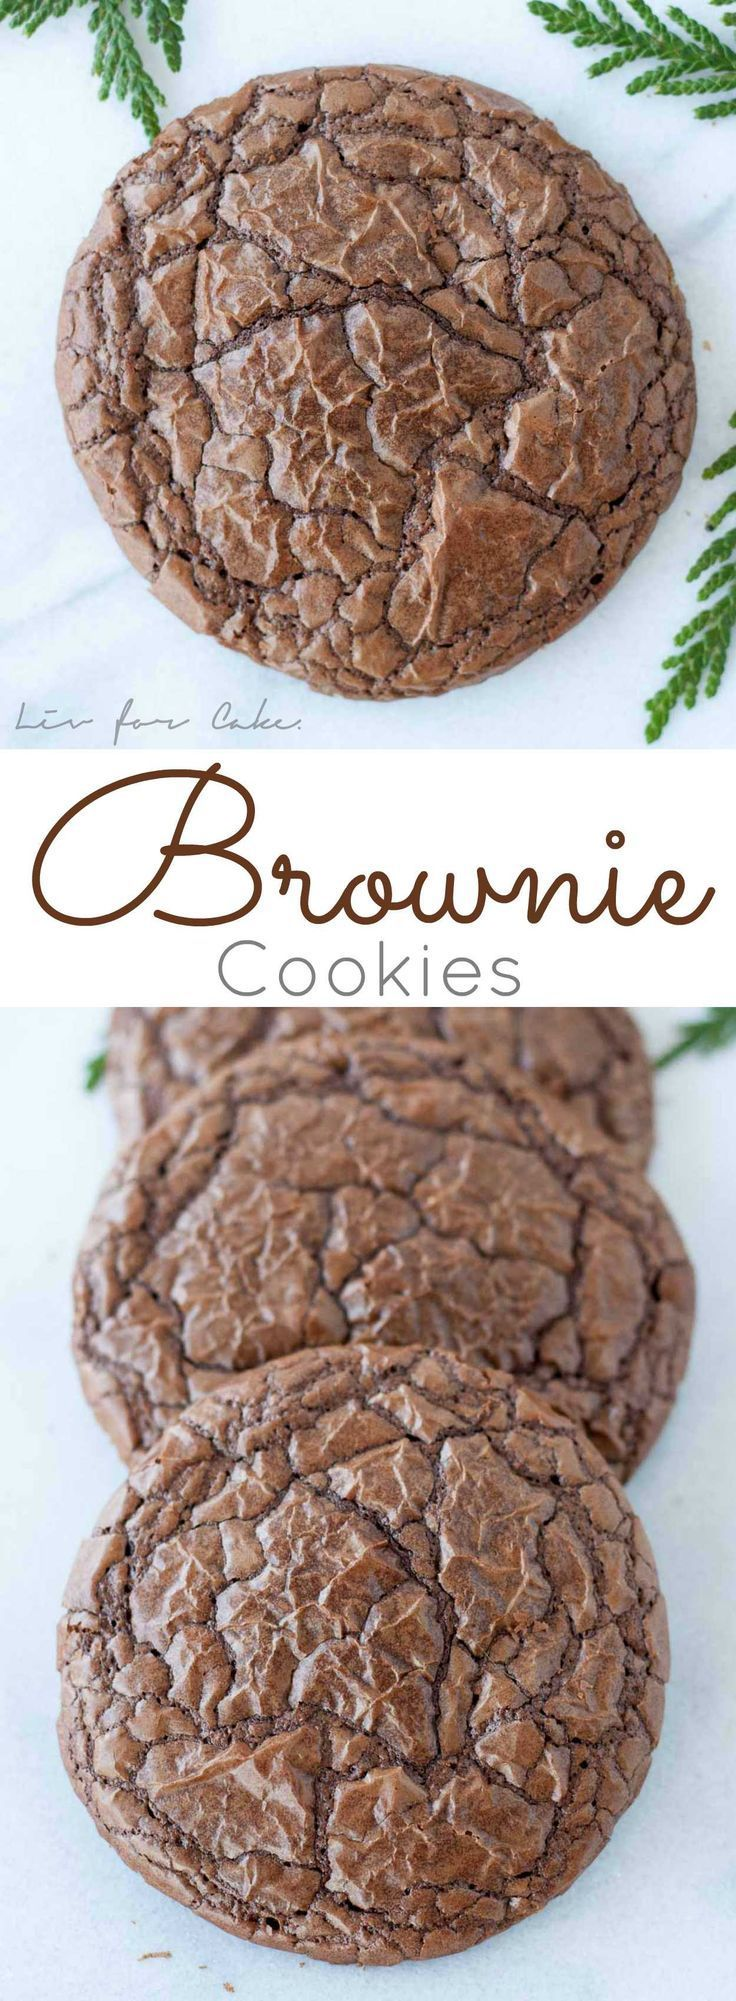 The best of both worlds! These brownie cookies are your favourite chewy, chocolatey brownies in cookie form!